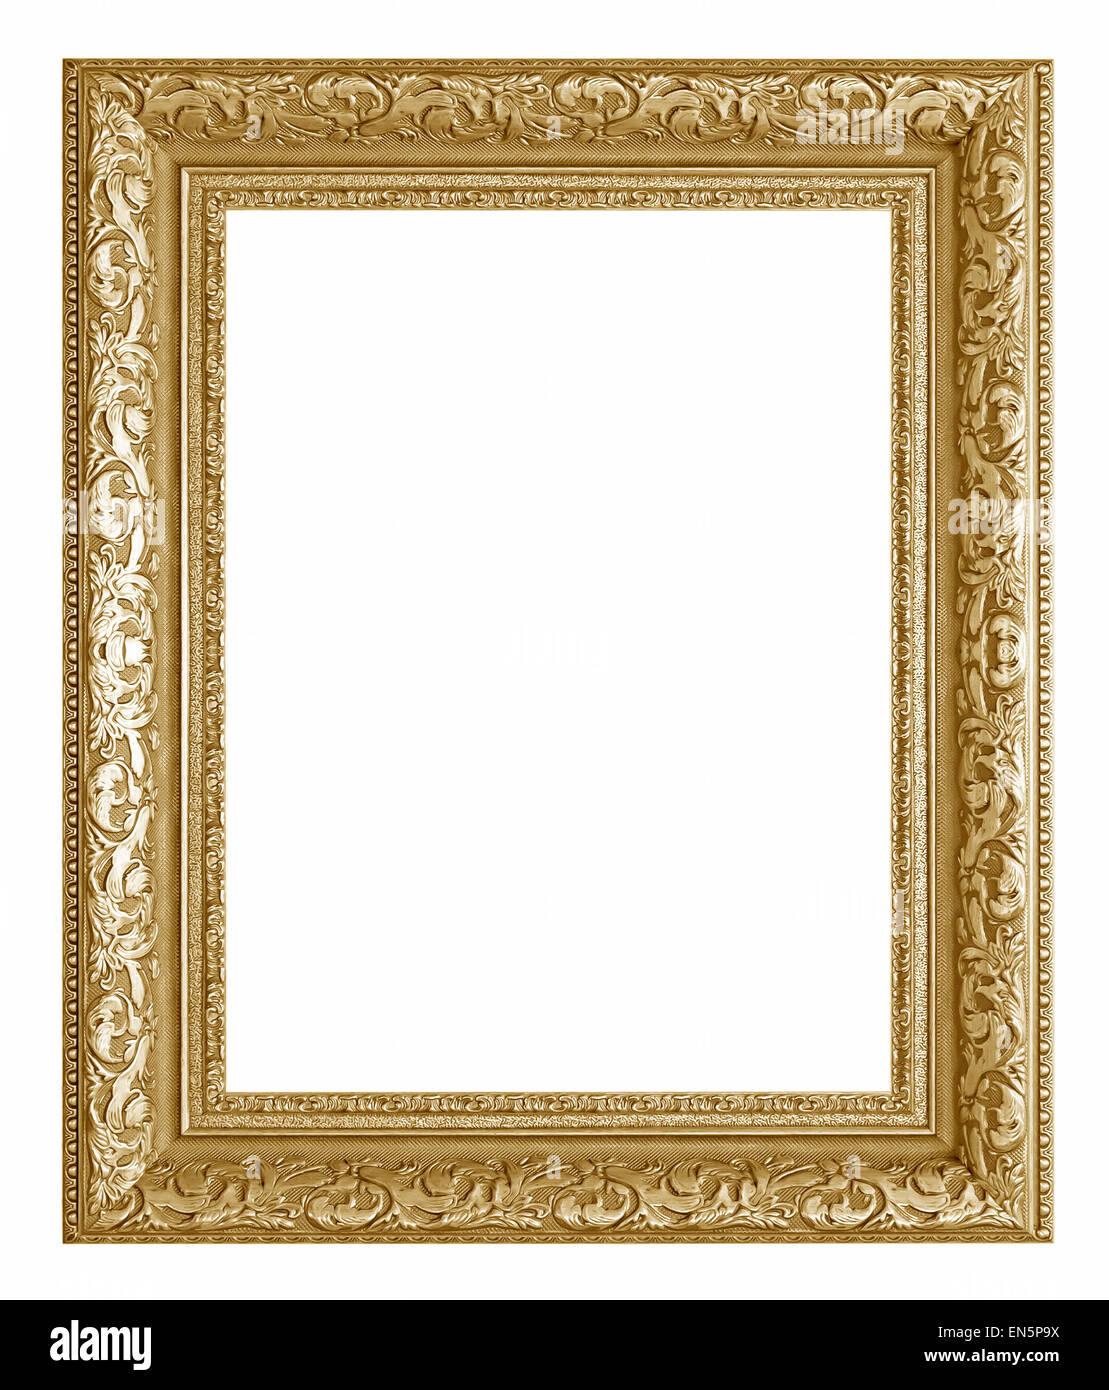 woode picture frame. Isolated over white background Stock Photo